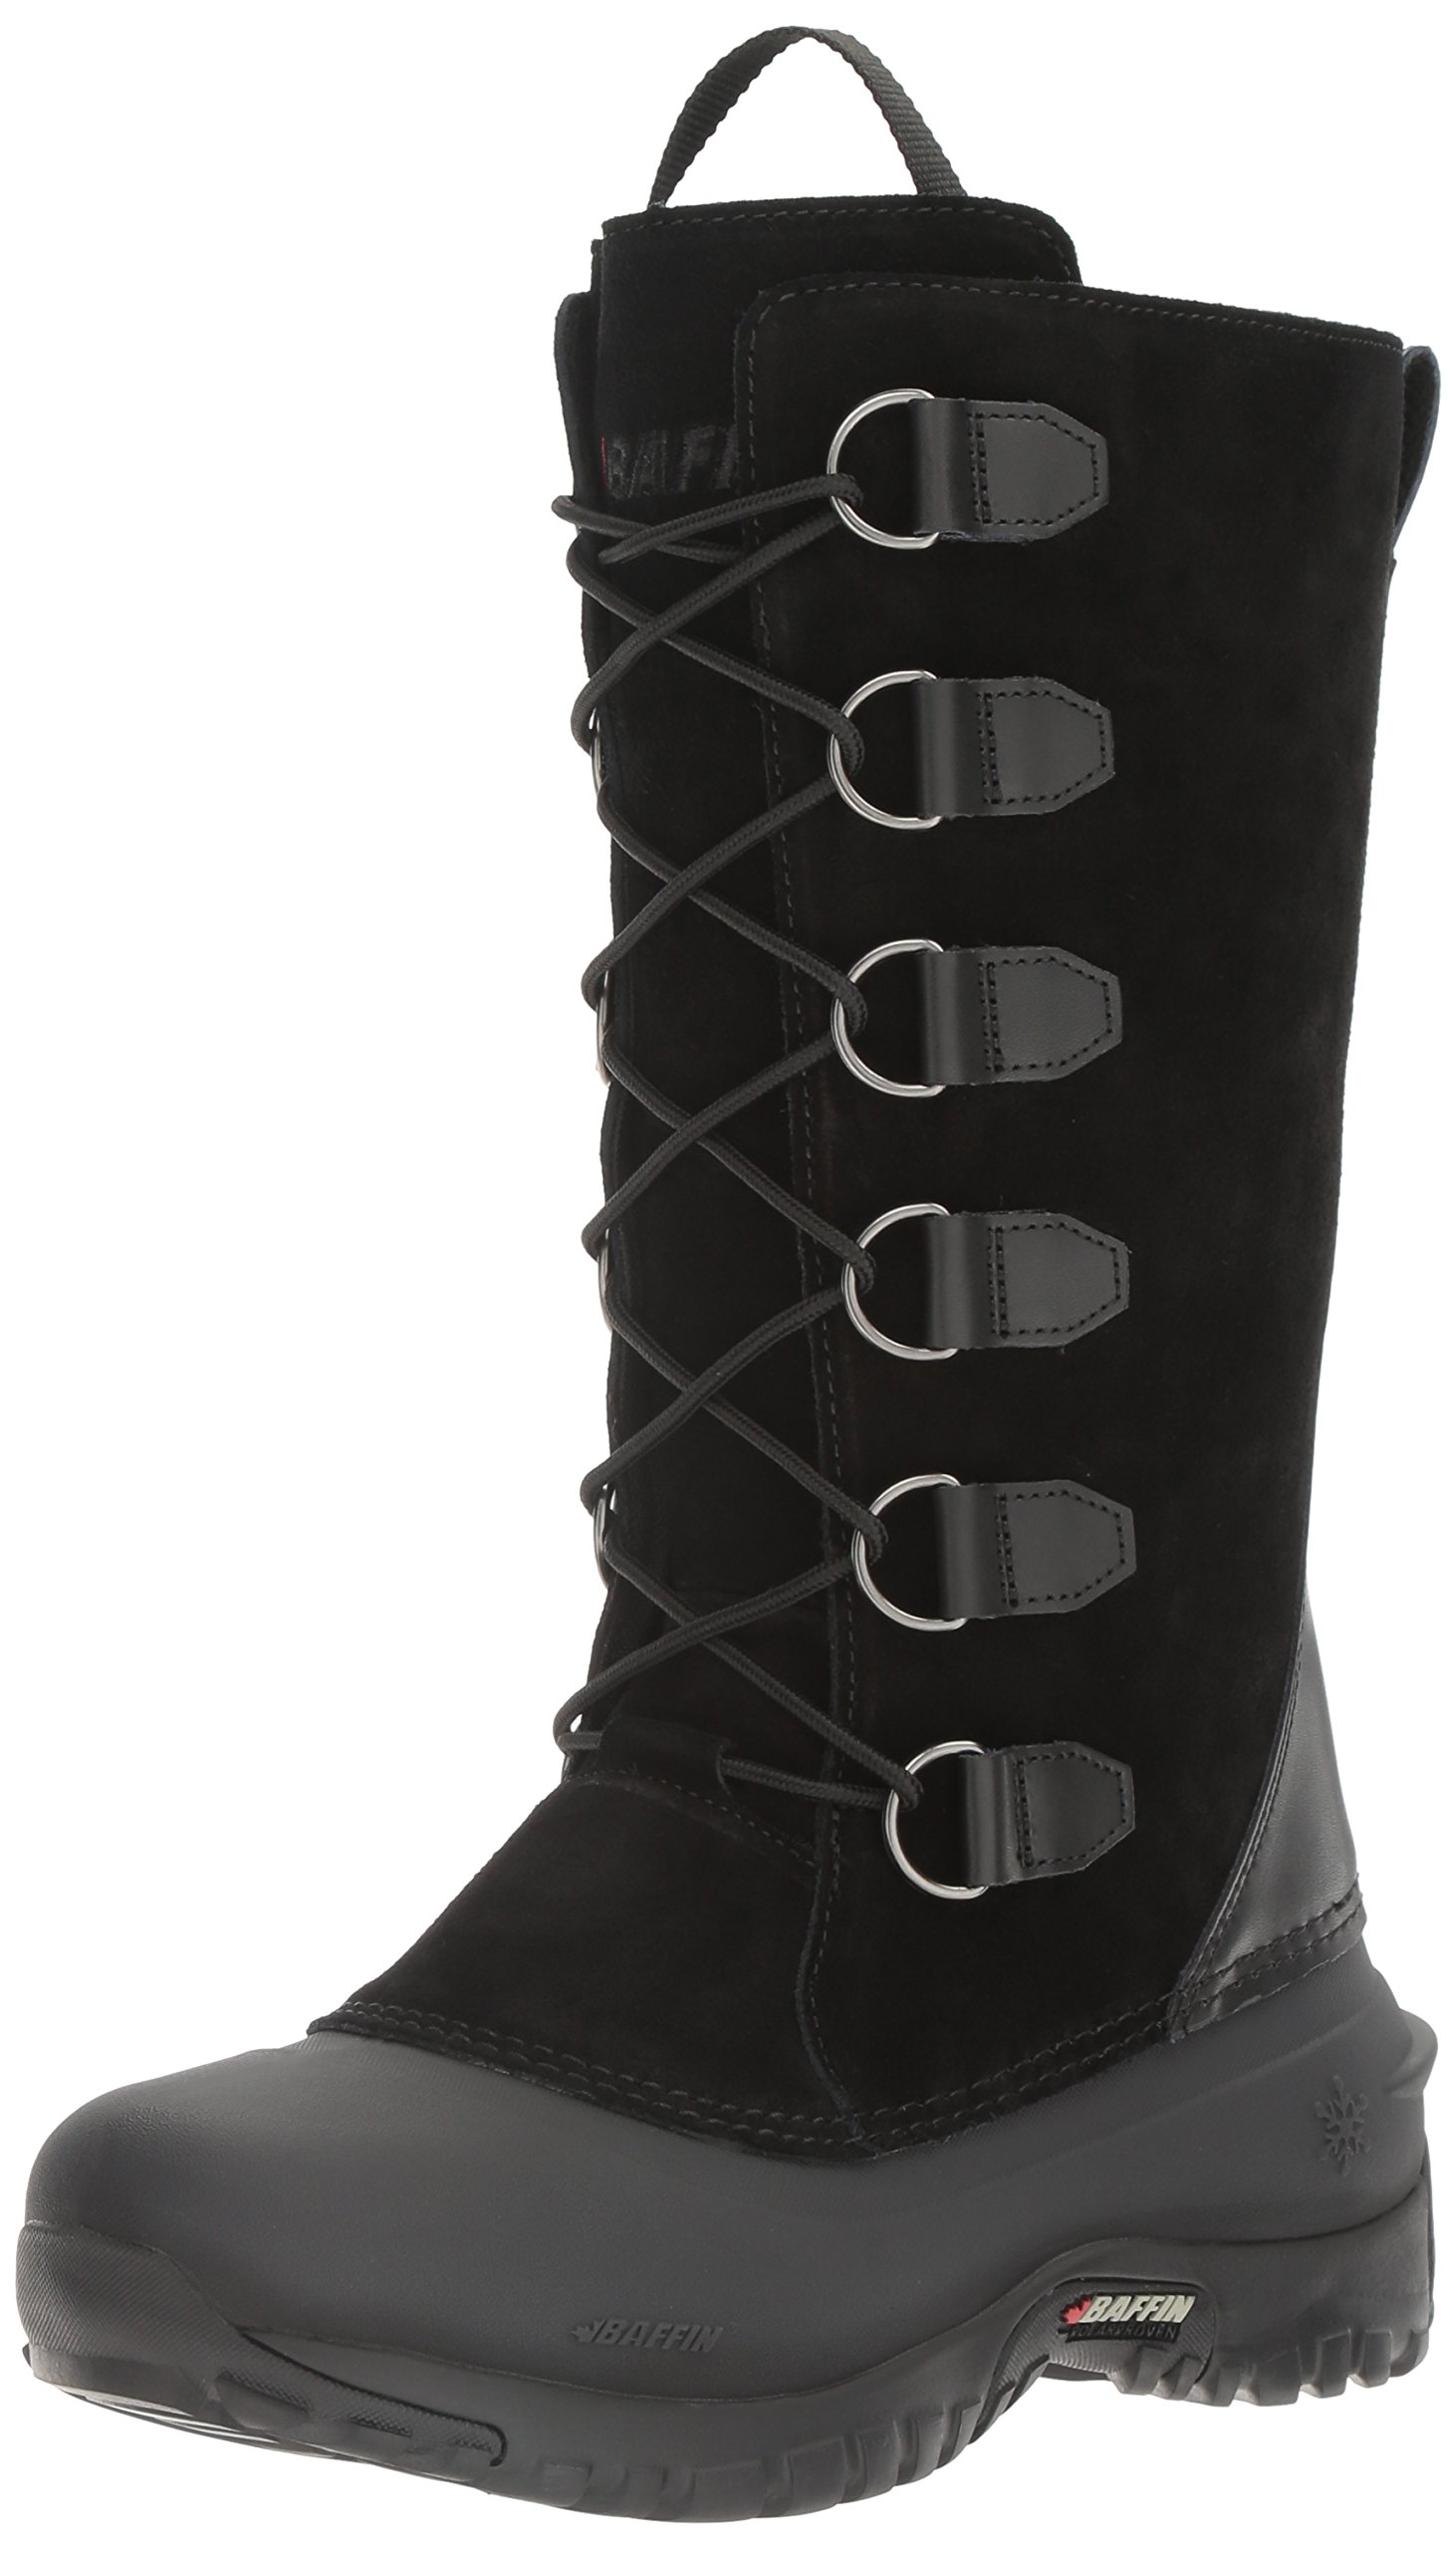 Baffin Women's Coco Insulated Suede Winter Boot,Black,10 M US